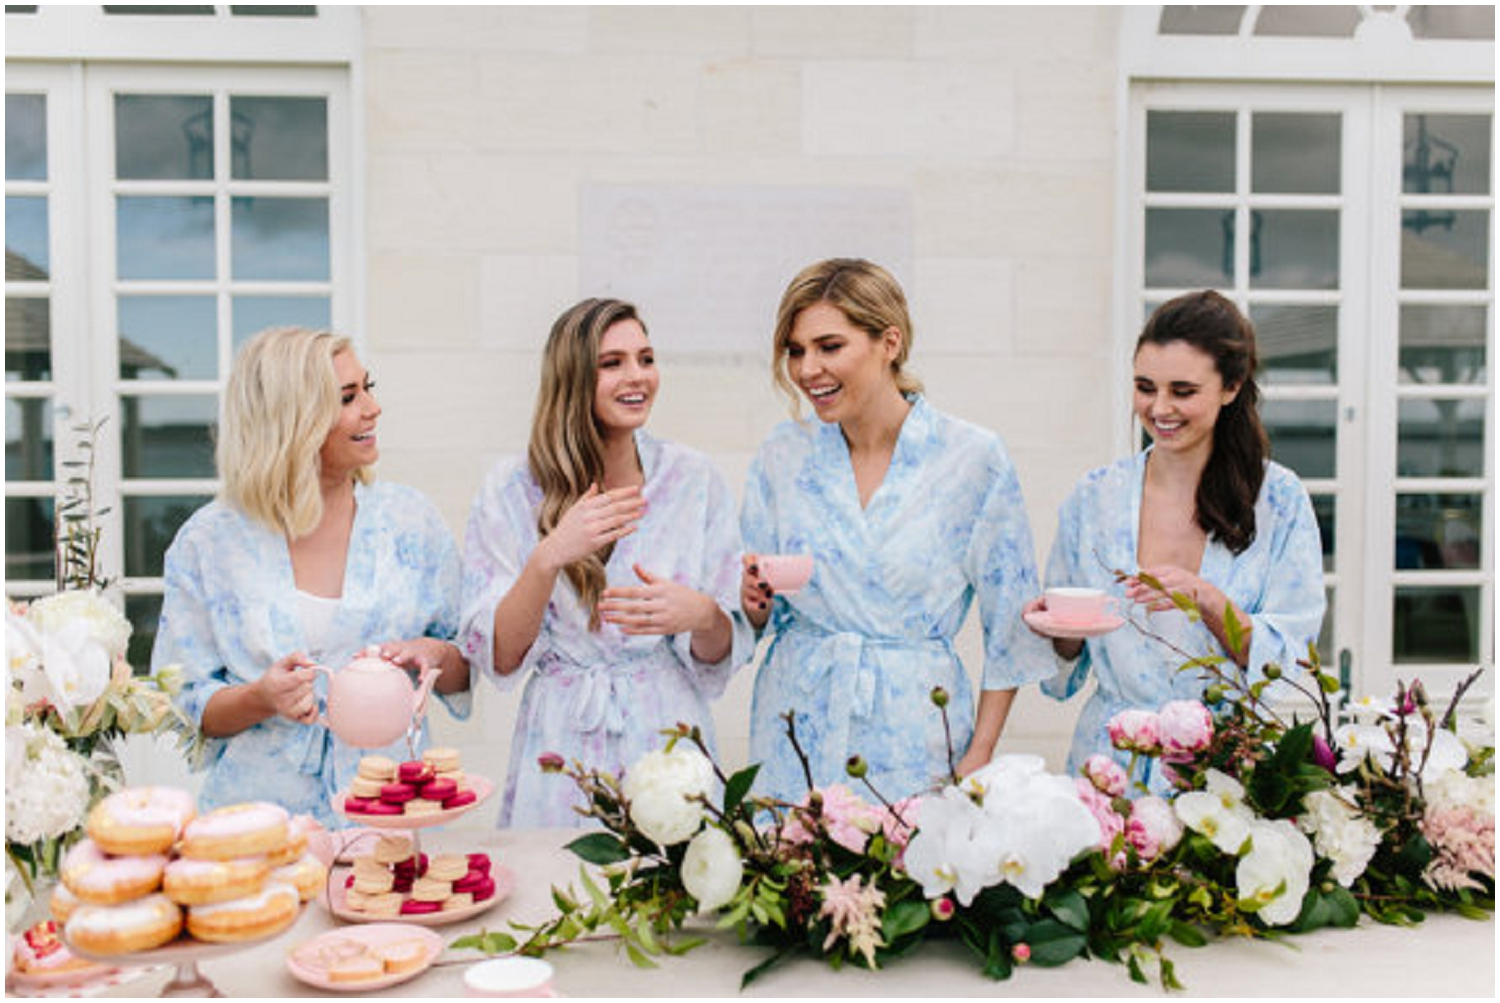 Brunch it up with your ladies in these adorable colored robes.